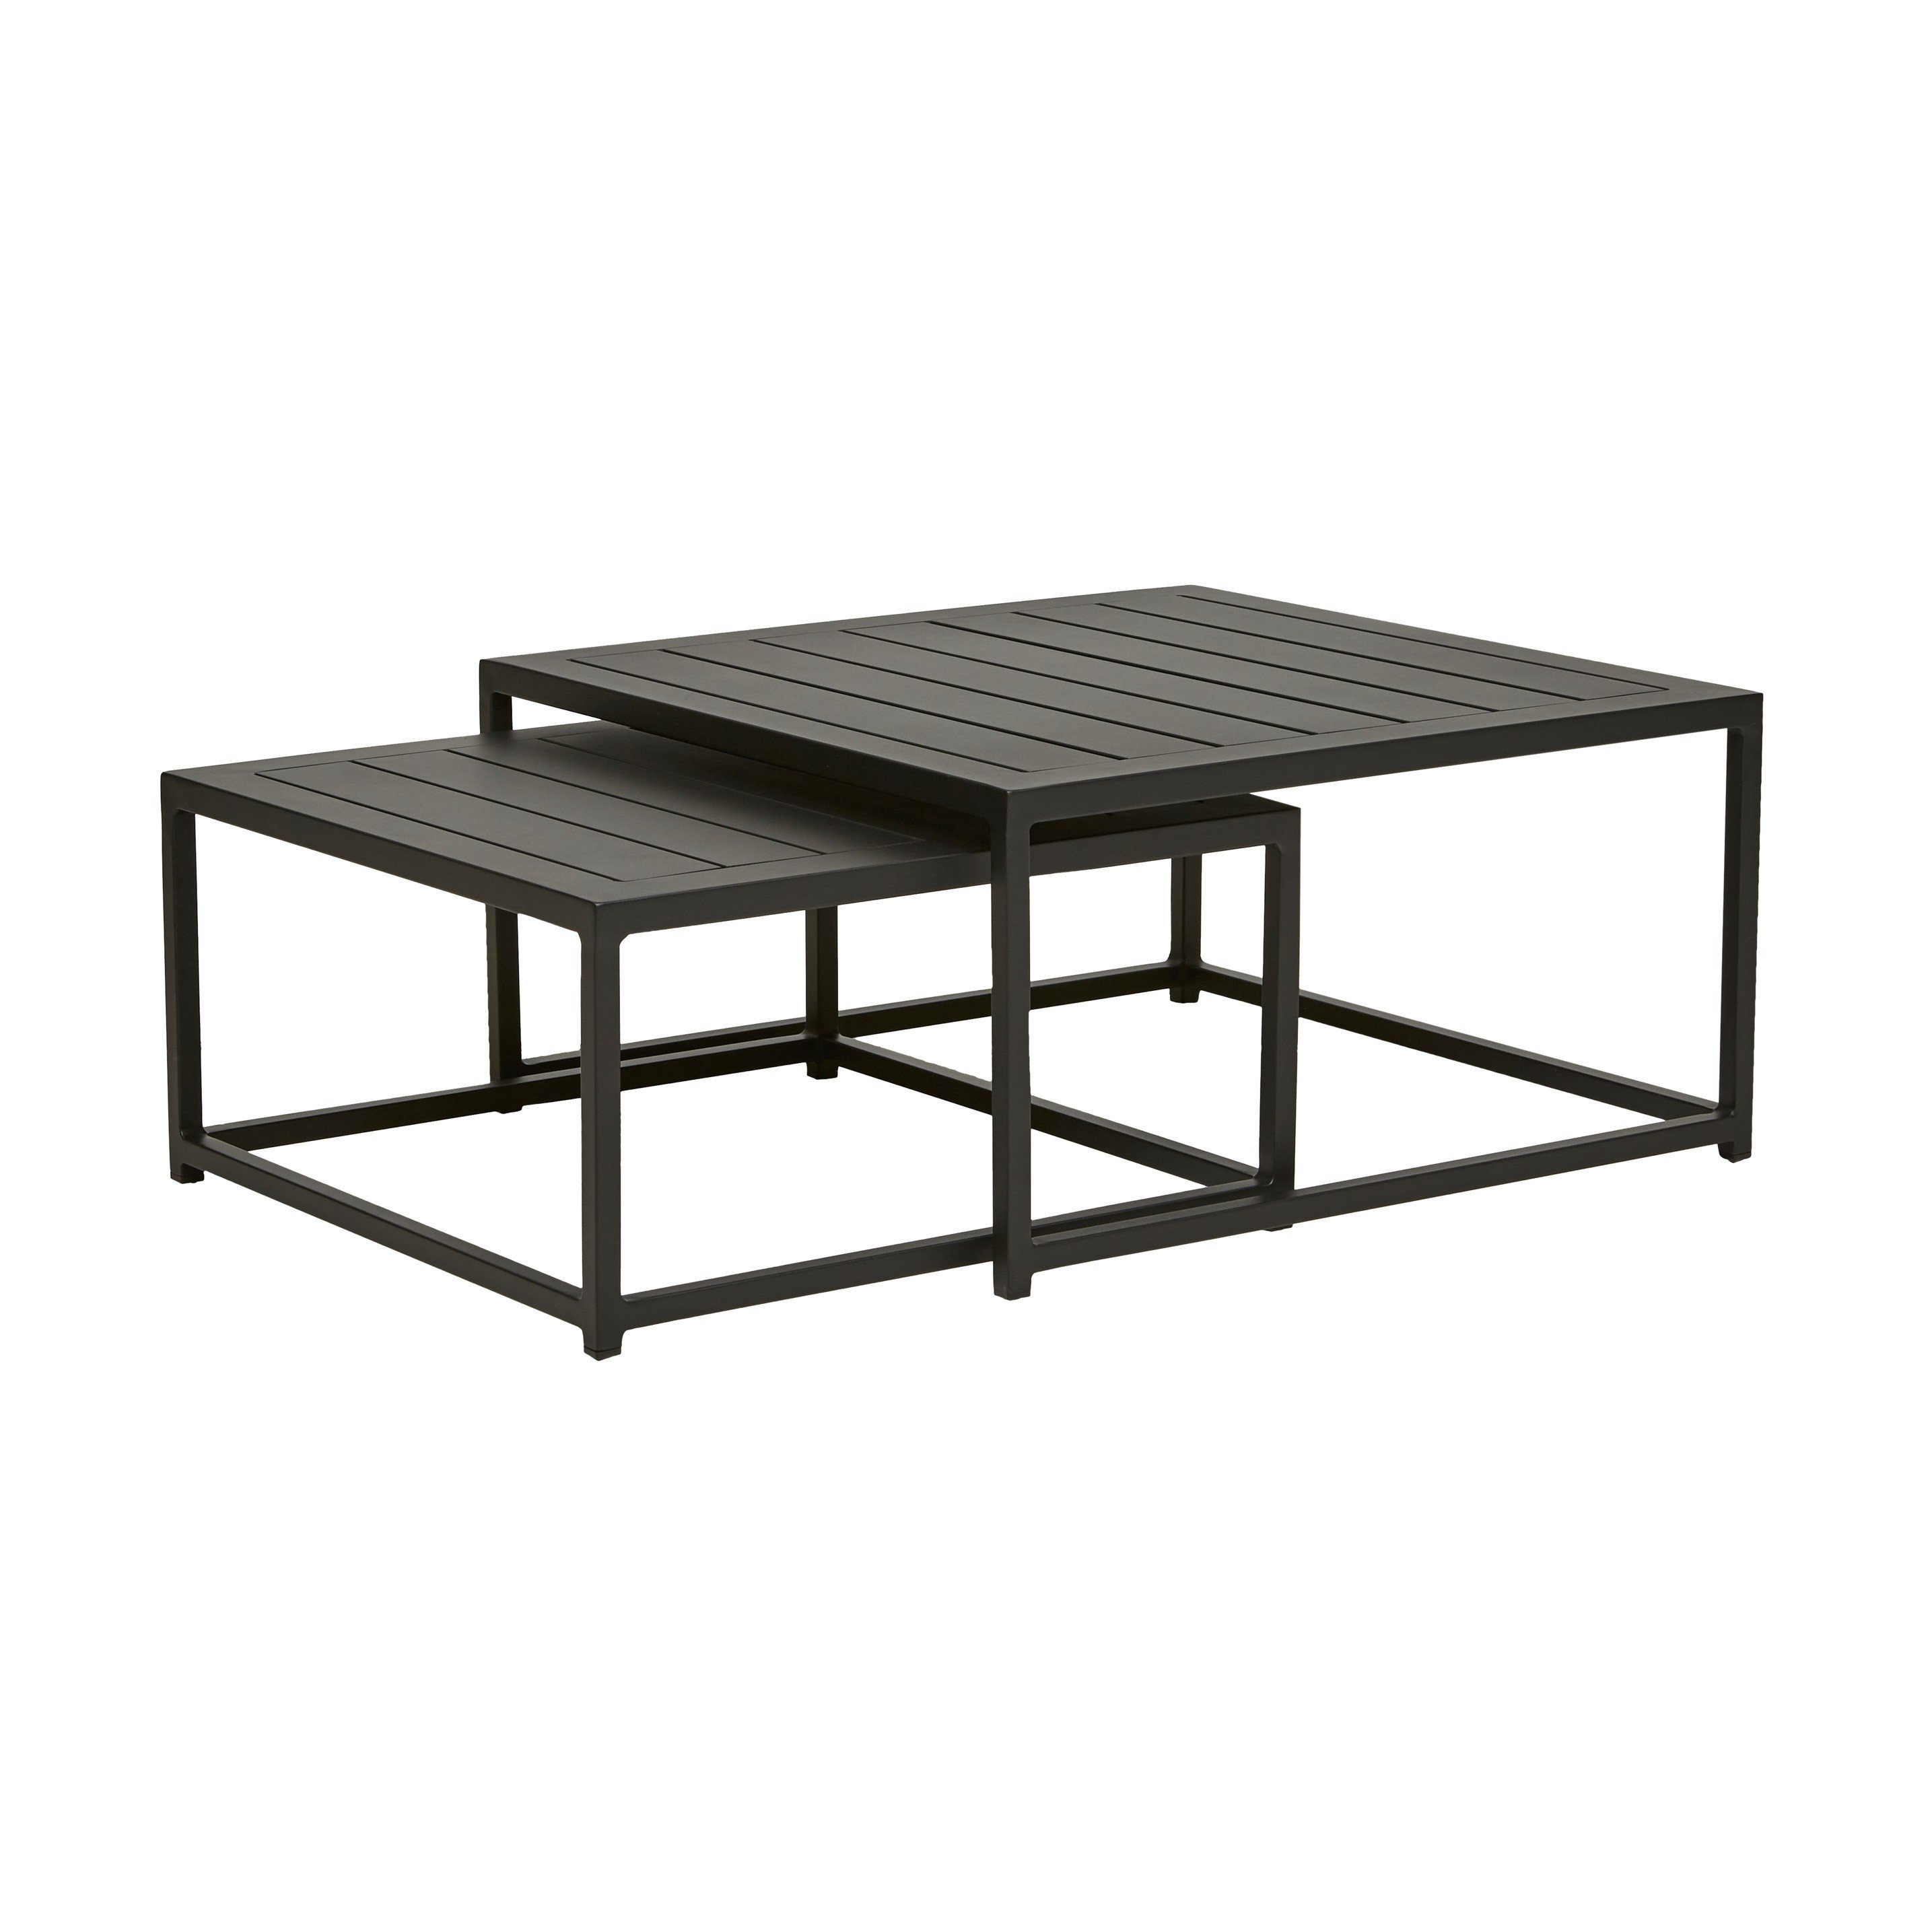 Furniture Hero-Images Coffee-Side-Tables-and-Trolleys aruba-square-nest-two-coffee-tables-01